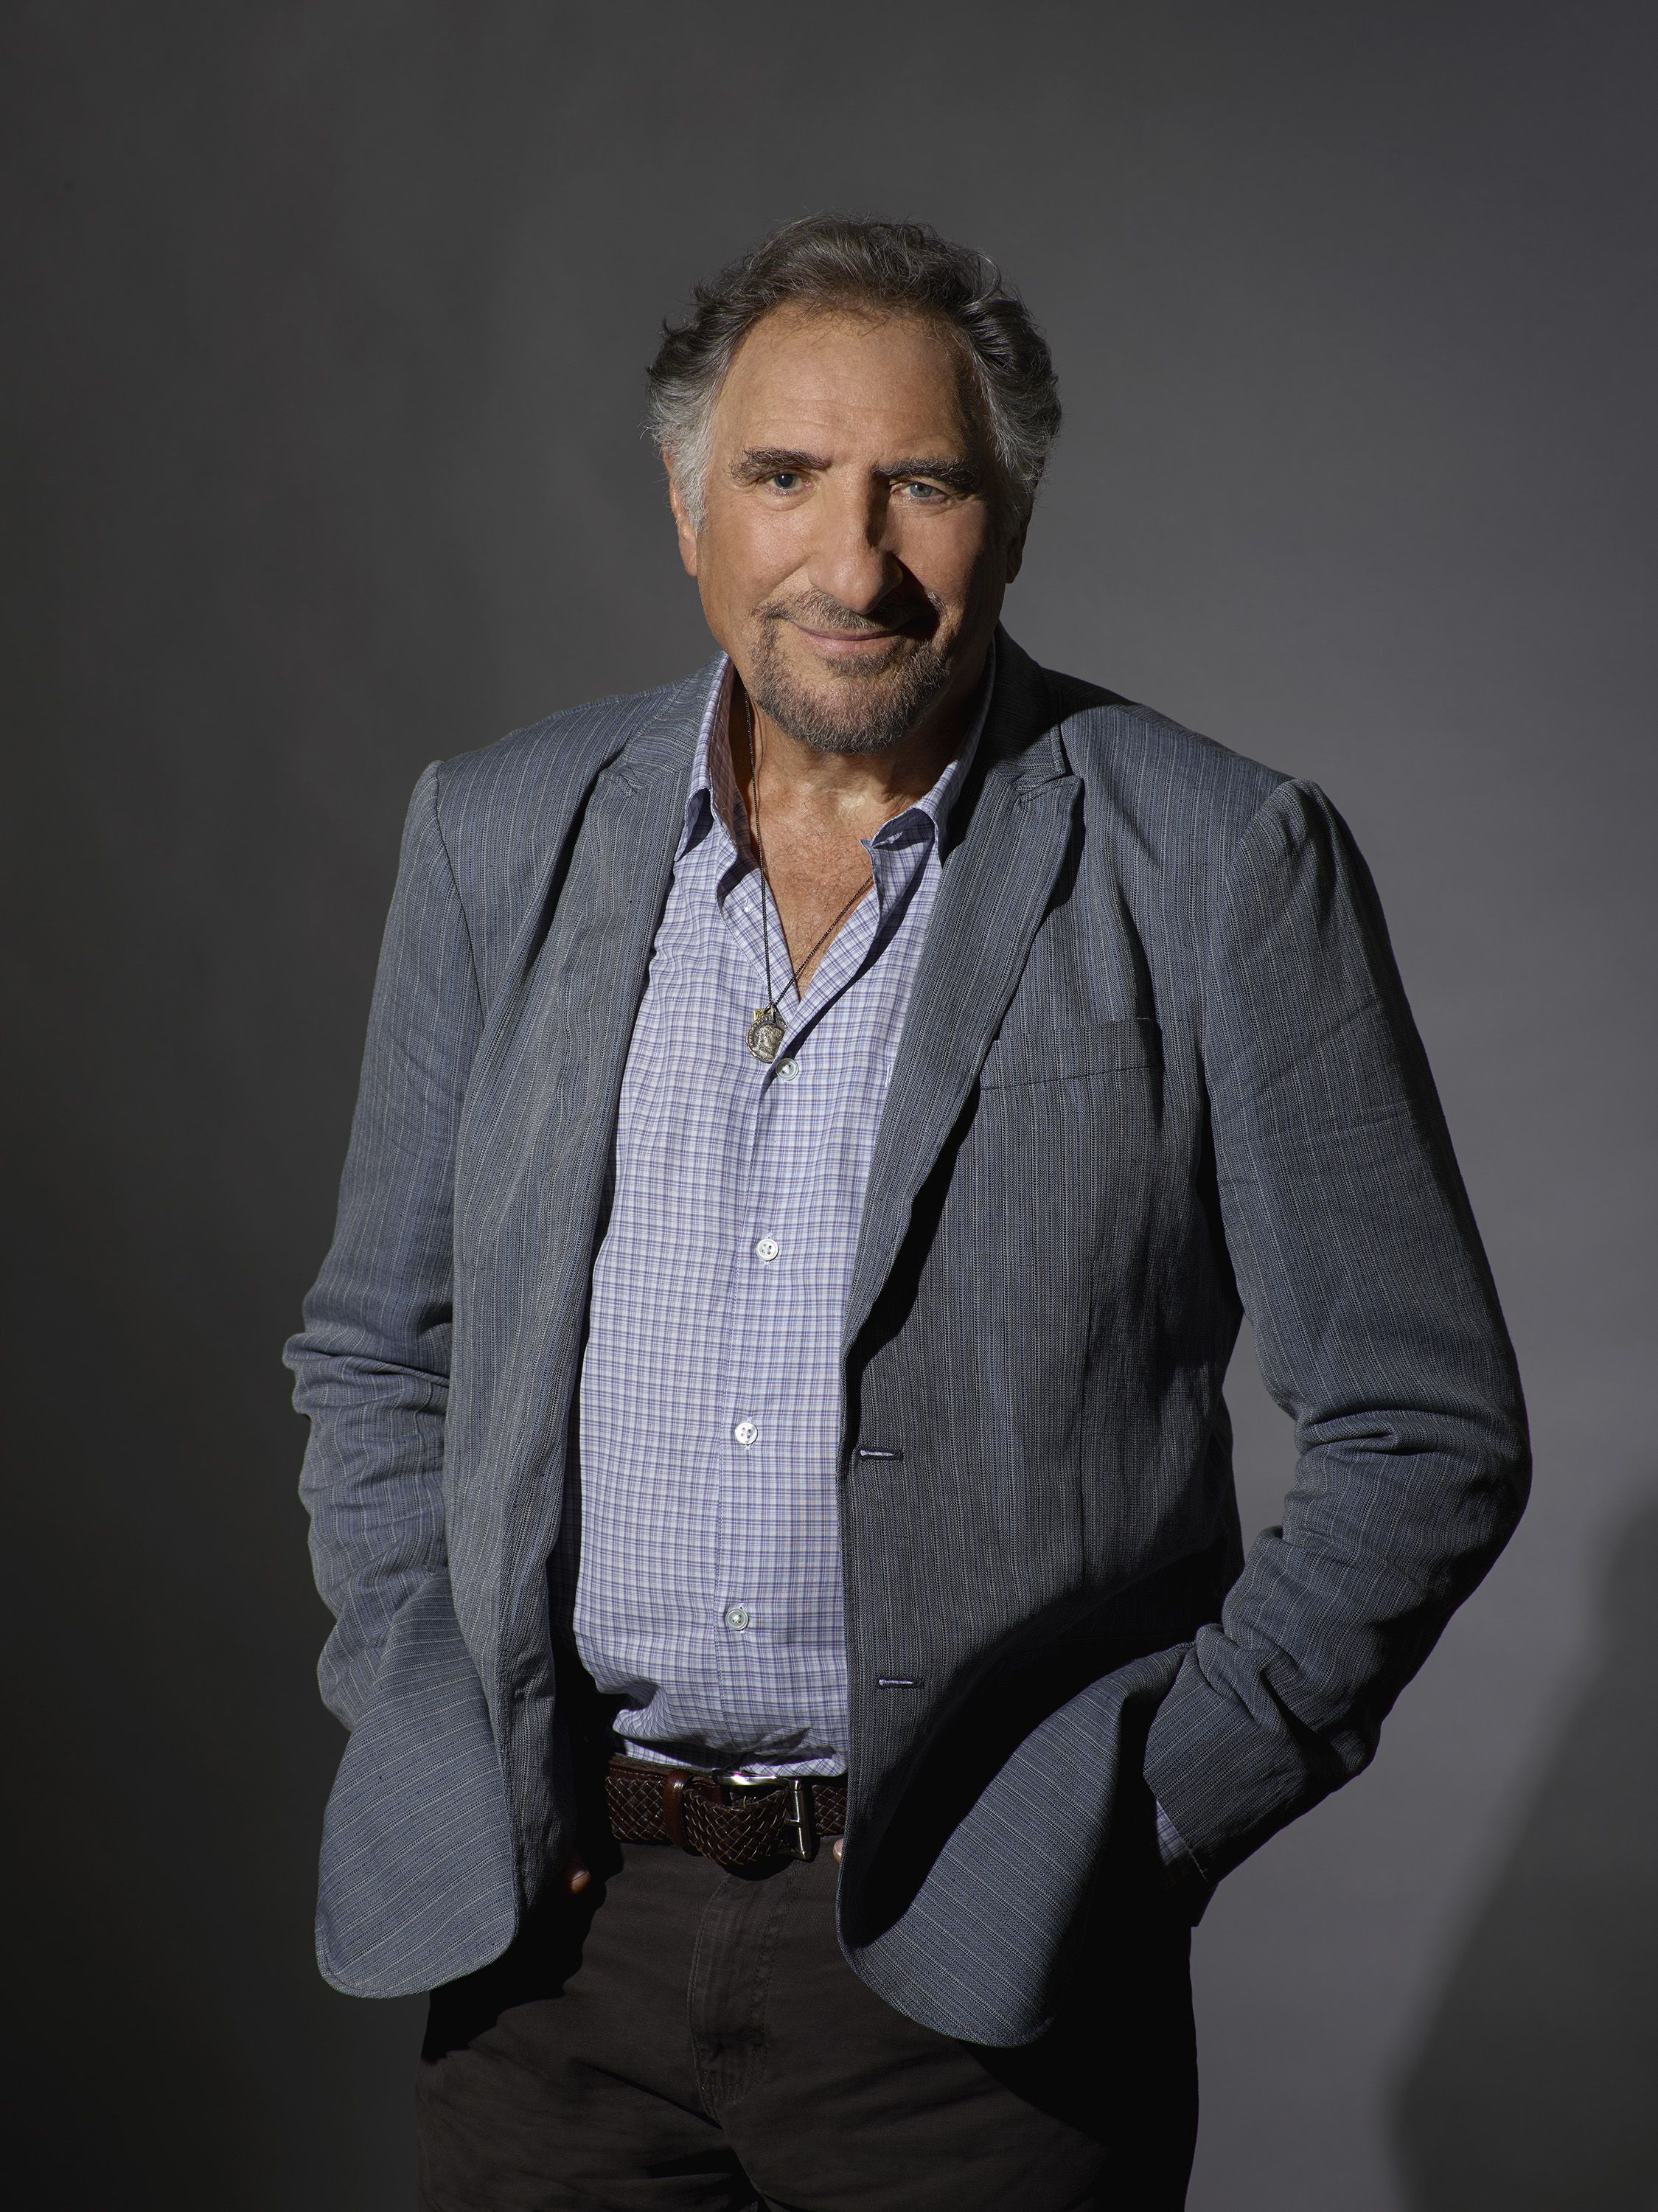 Abe Played By Judd Hirsch Forever Absolutely Perfect For His Role How Can You Go Wrong With This Cast Saveforever Forever Tv Show Forever Actors